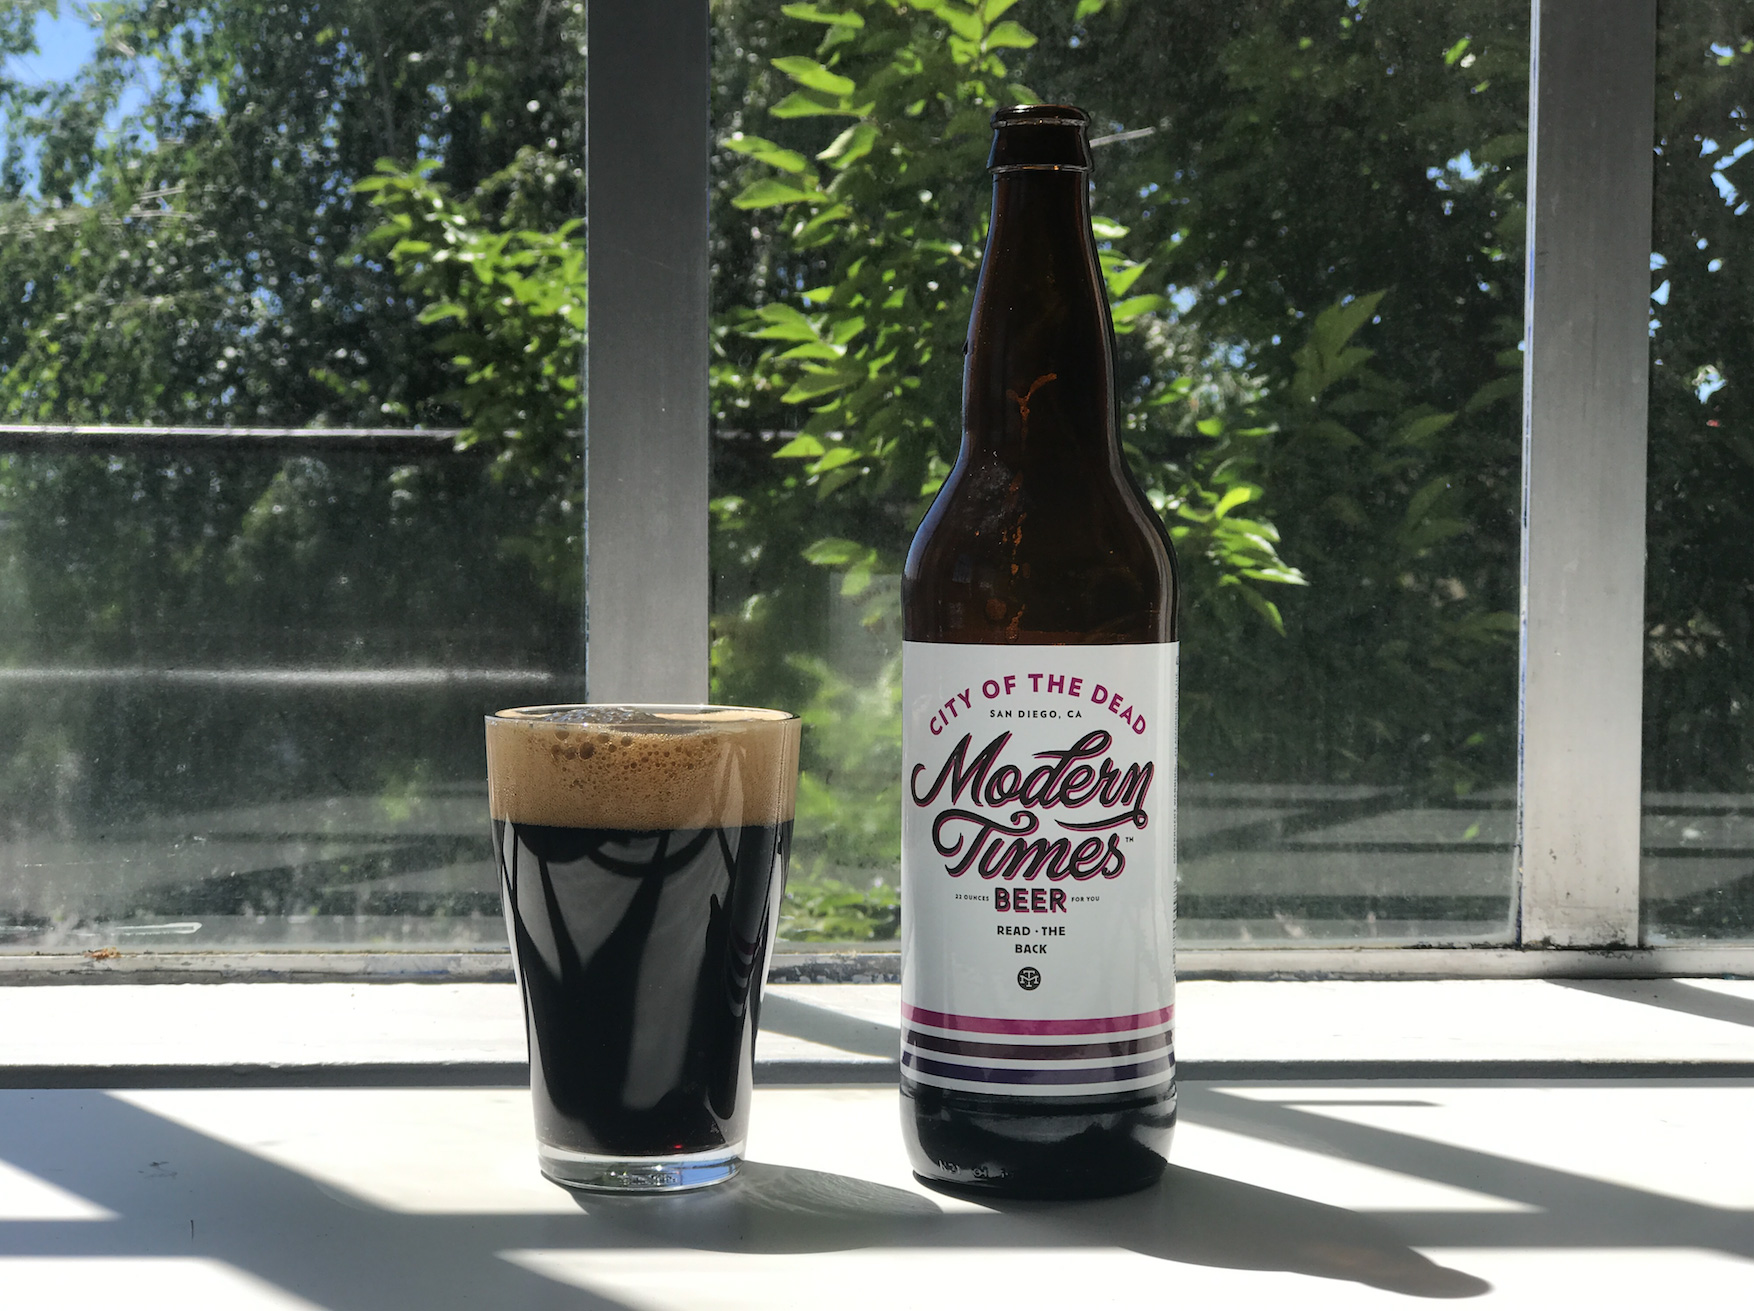 Coffee Beer: City Of The Dead By Modern Times Beer photo